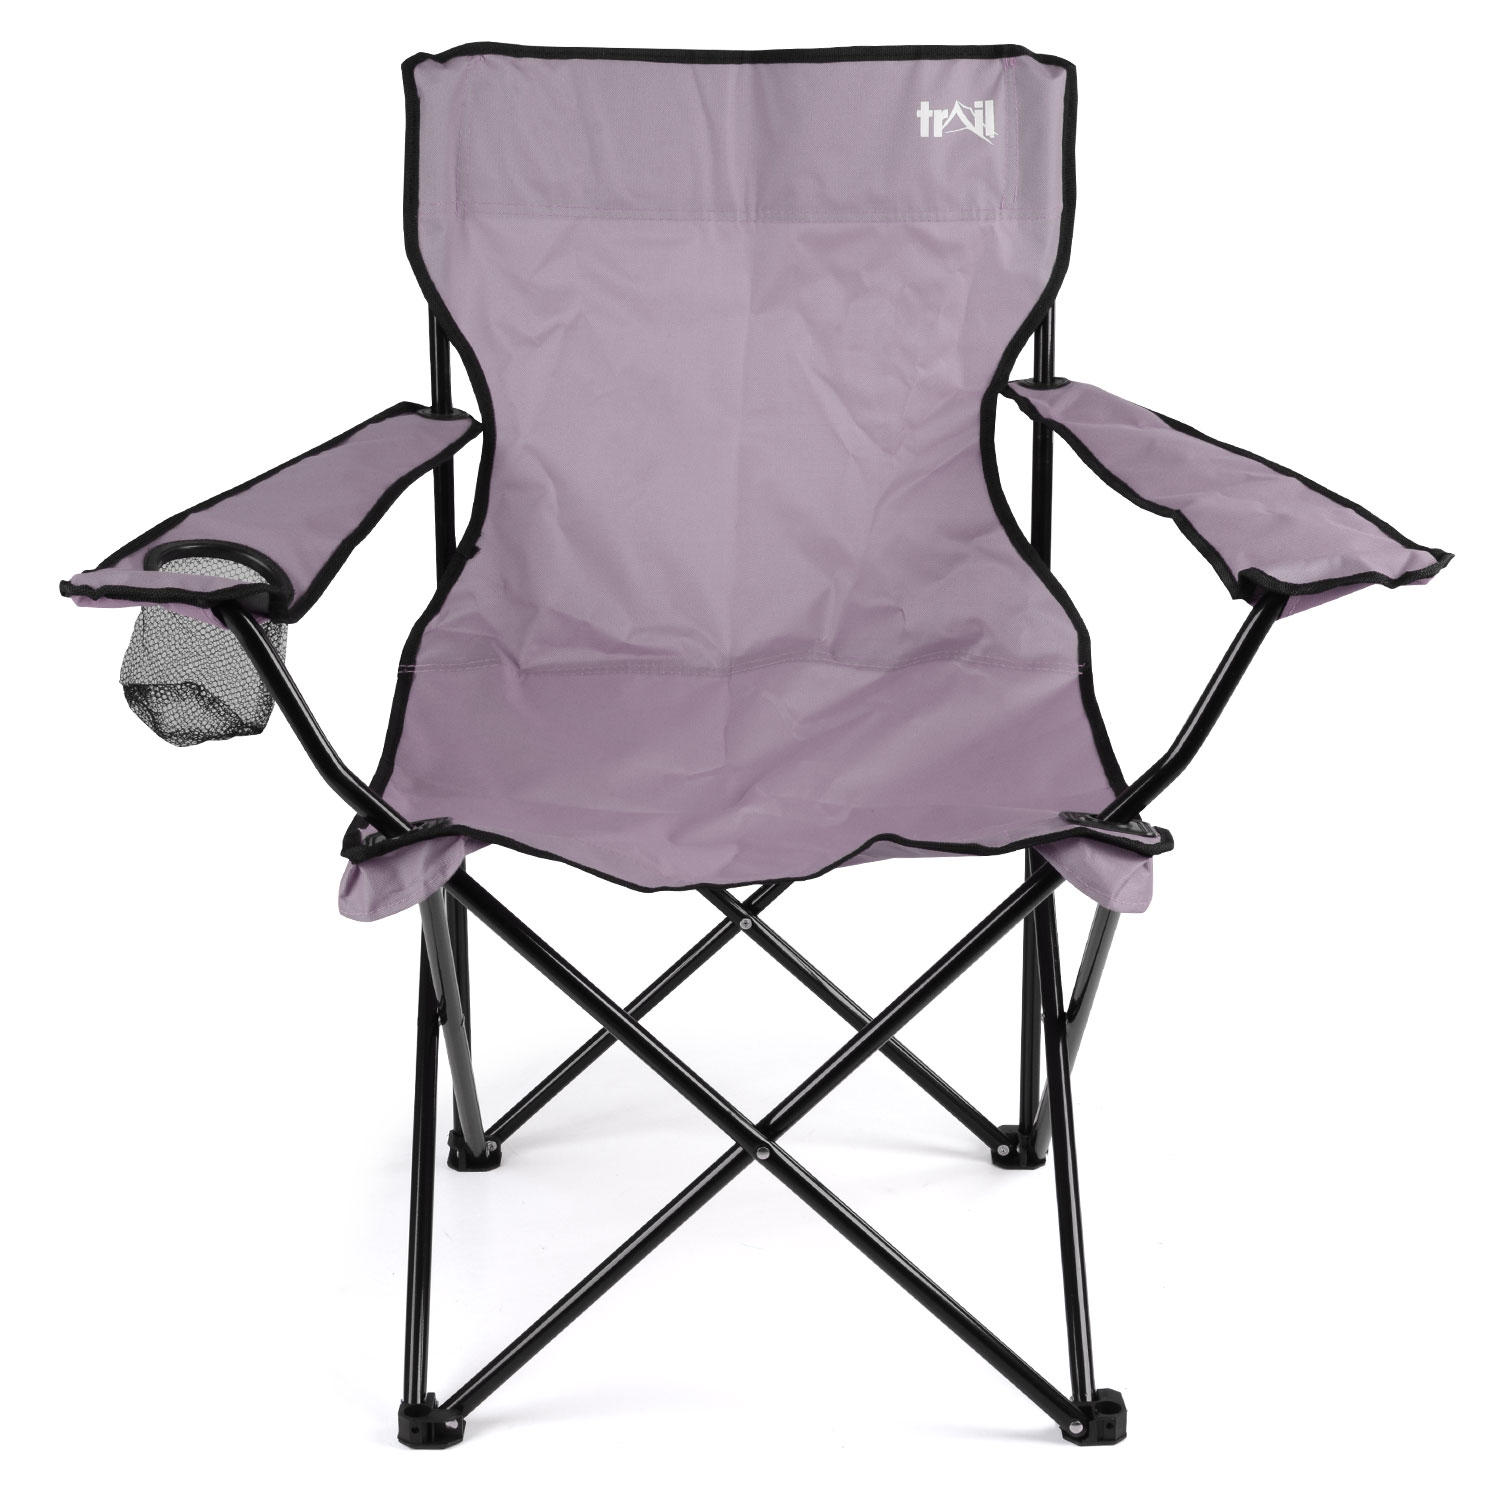 fishing chair for sale uk wrought iron chairs lowes folding foldable camping beach fold up camp festival